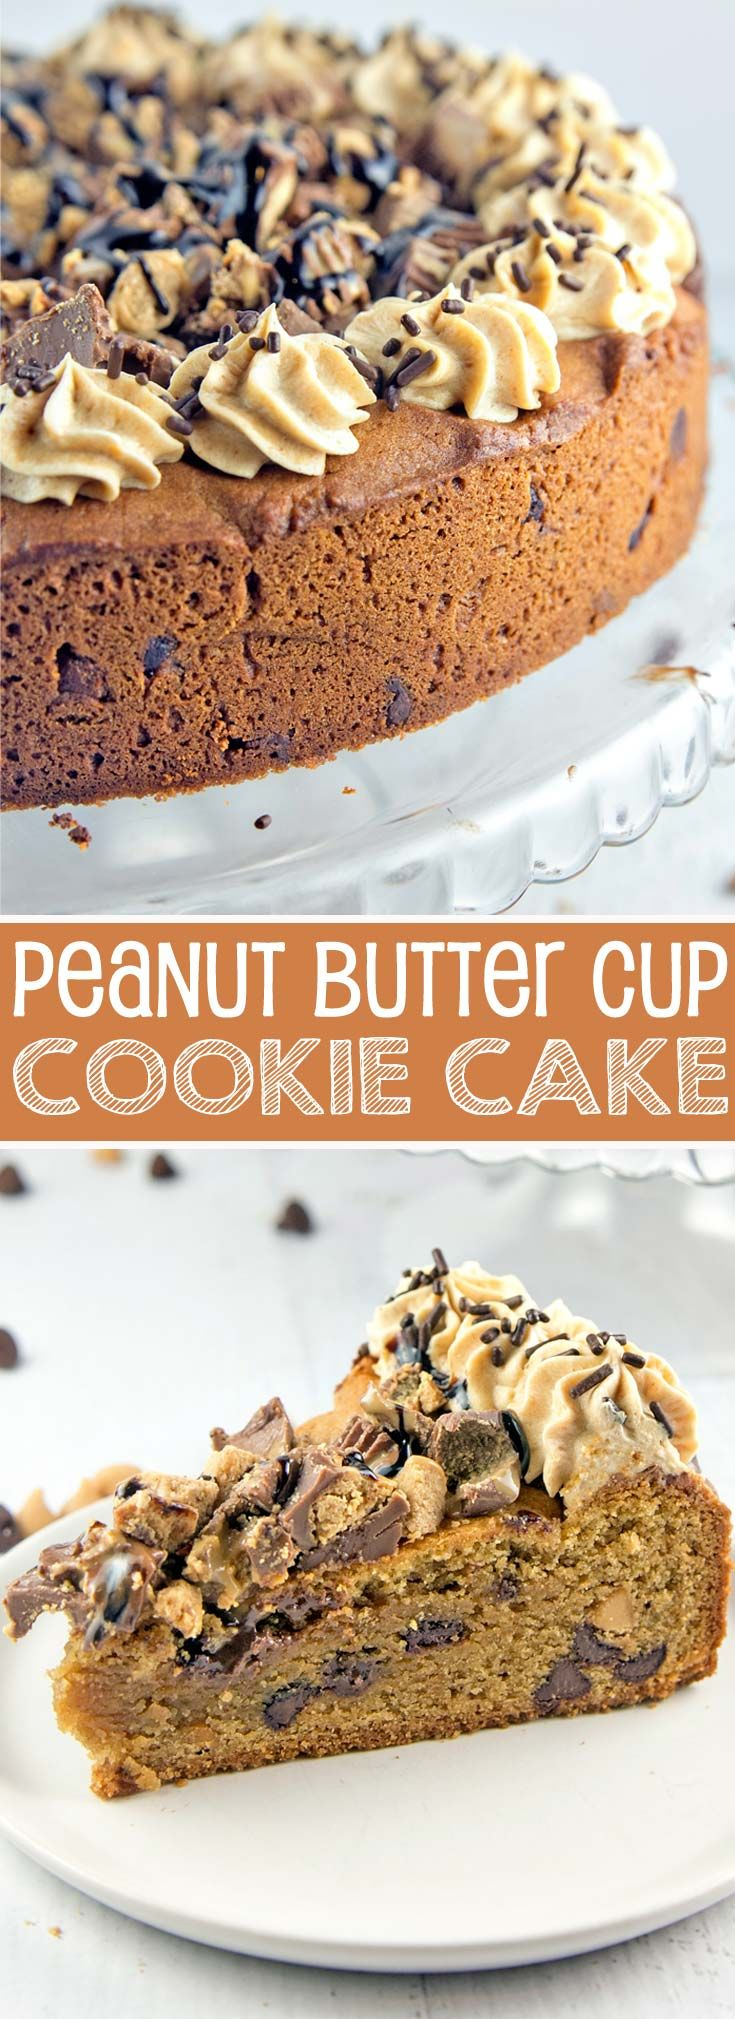 Peanut Butter Cup Cookie Cake: a peanut butter chocolate chip cookie cake, topped with whipped peanut butter ganache, chopped peanut butter cups, and chocolate and peanut butter sauces. {Bunsen Burner Bakery} via @bnsnbrnrbakery